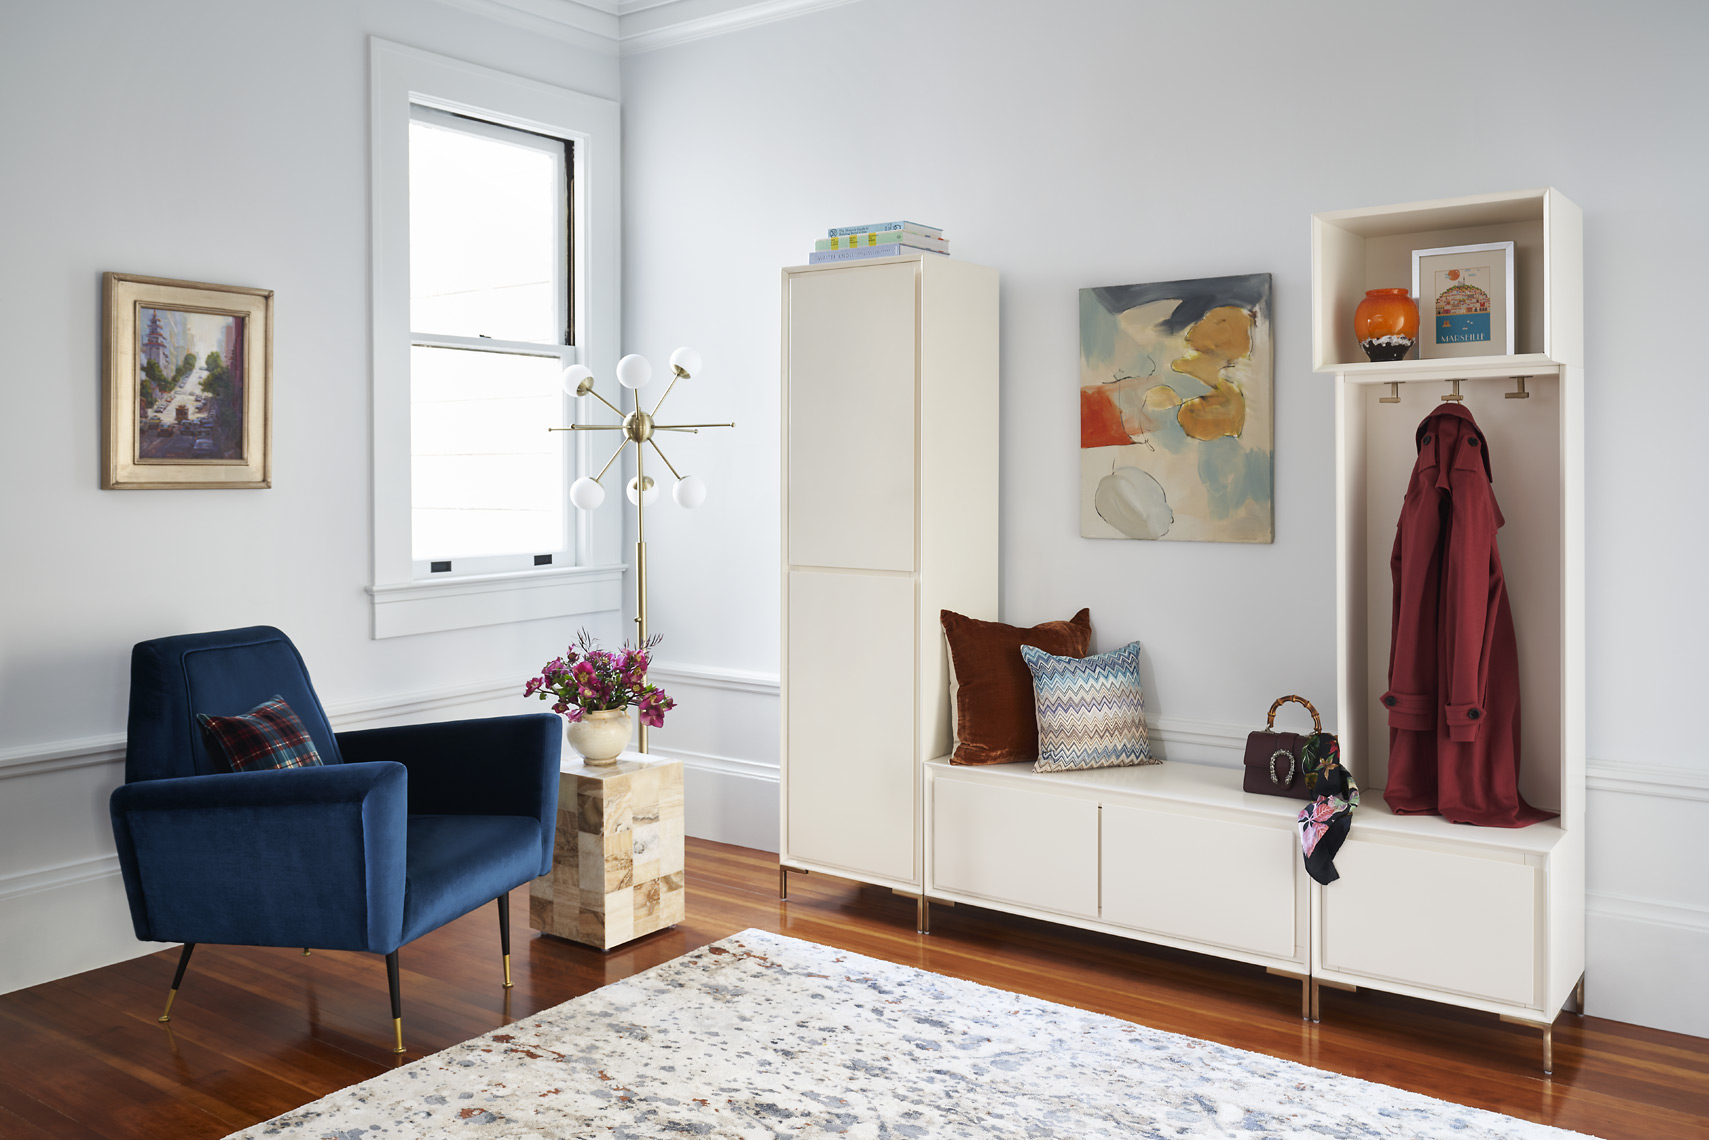 rterior-studio-los-angeles-ca-edwardian-beauty-entry-way-with-accent-chair-organization-area